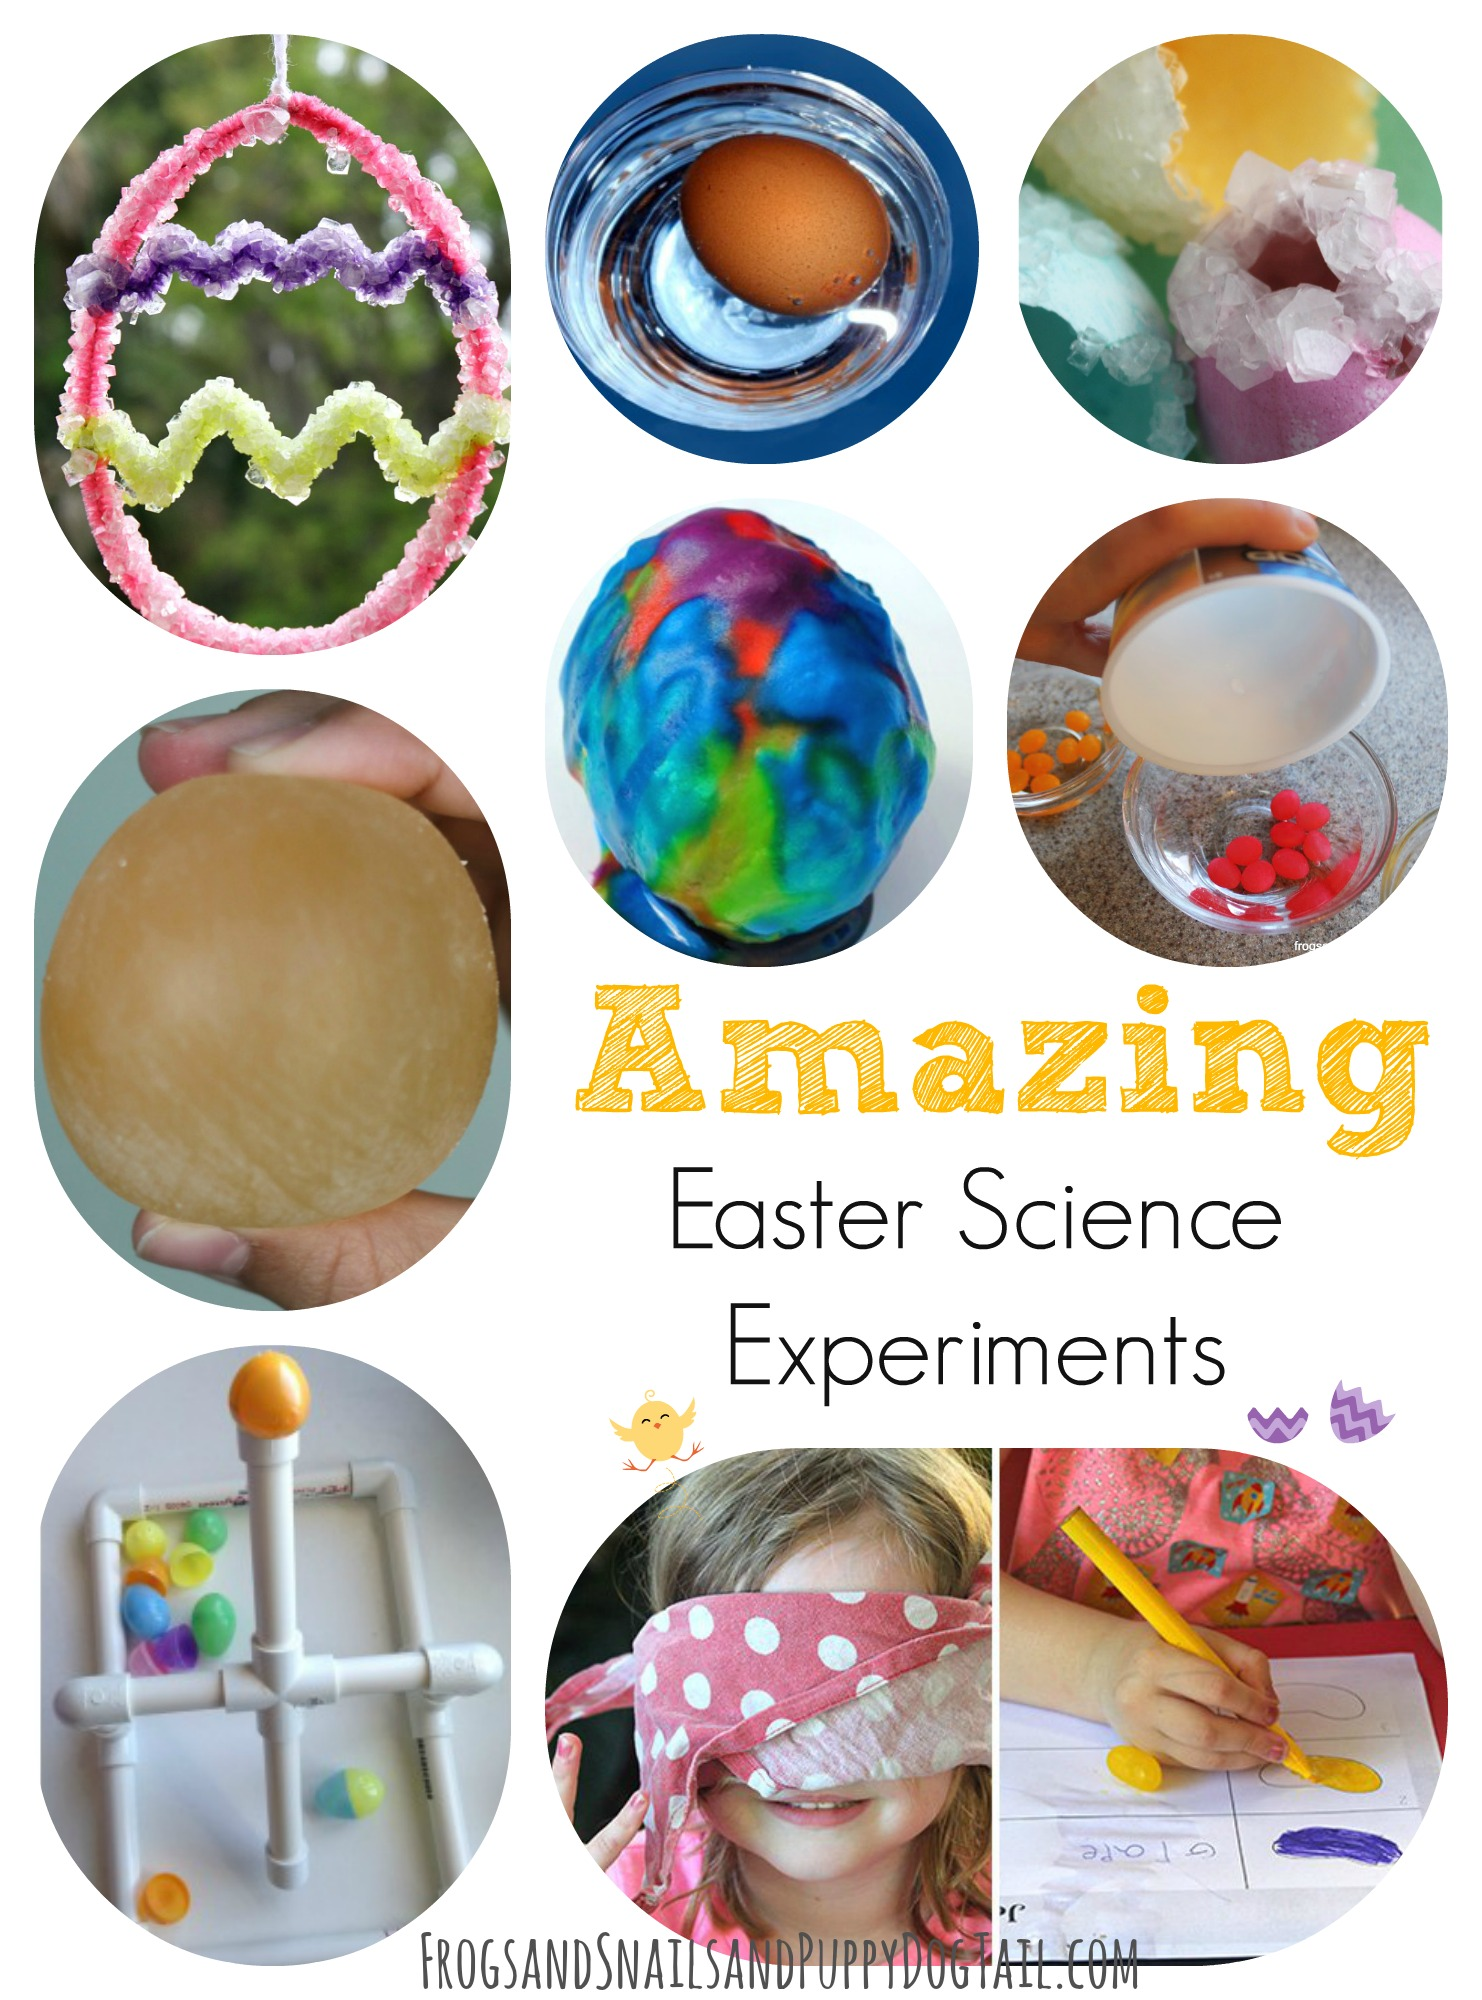 Amazing Easter Science Experiments